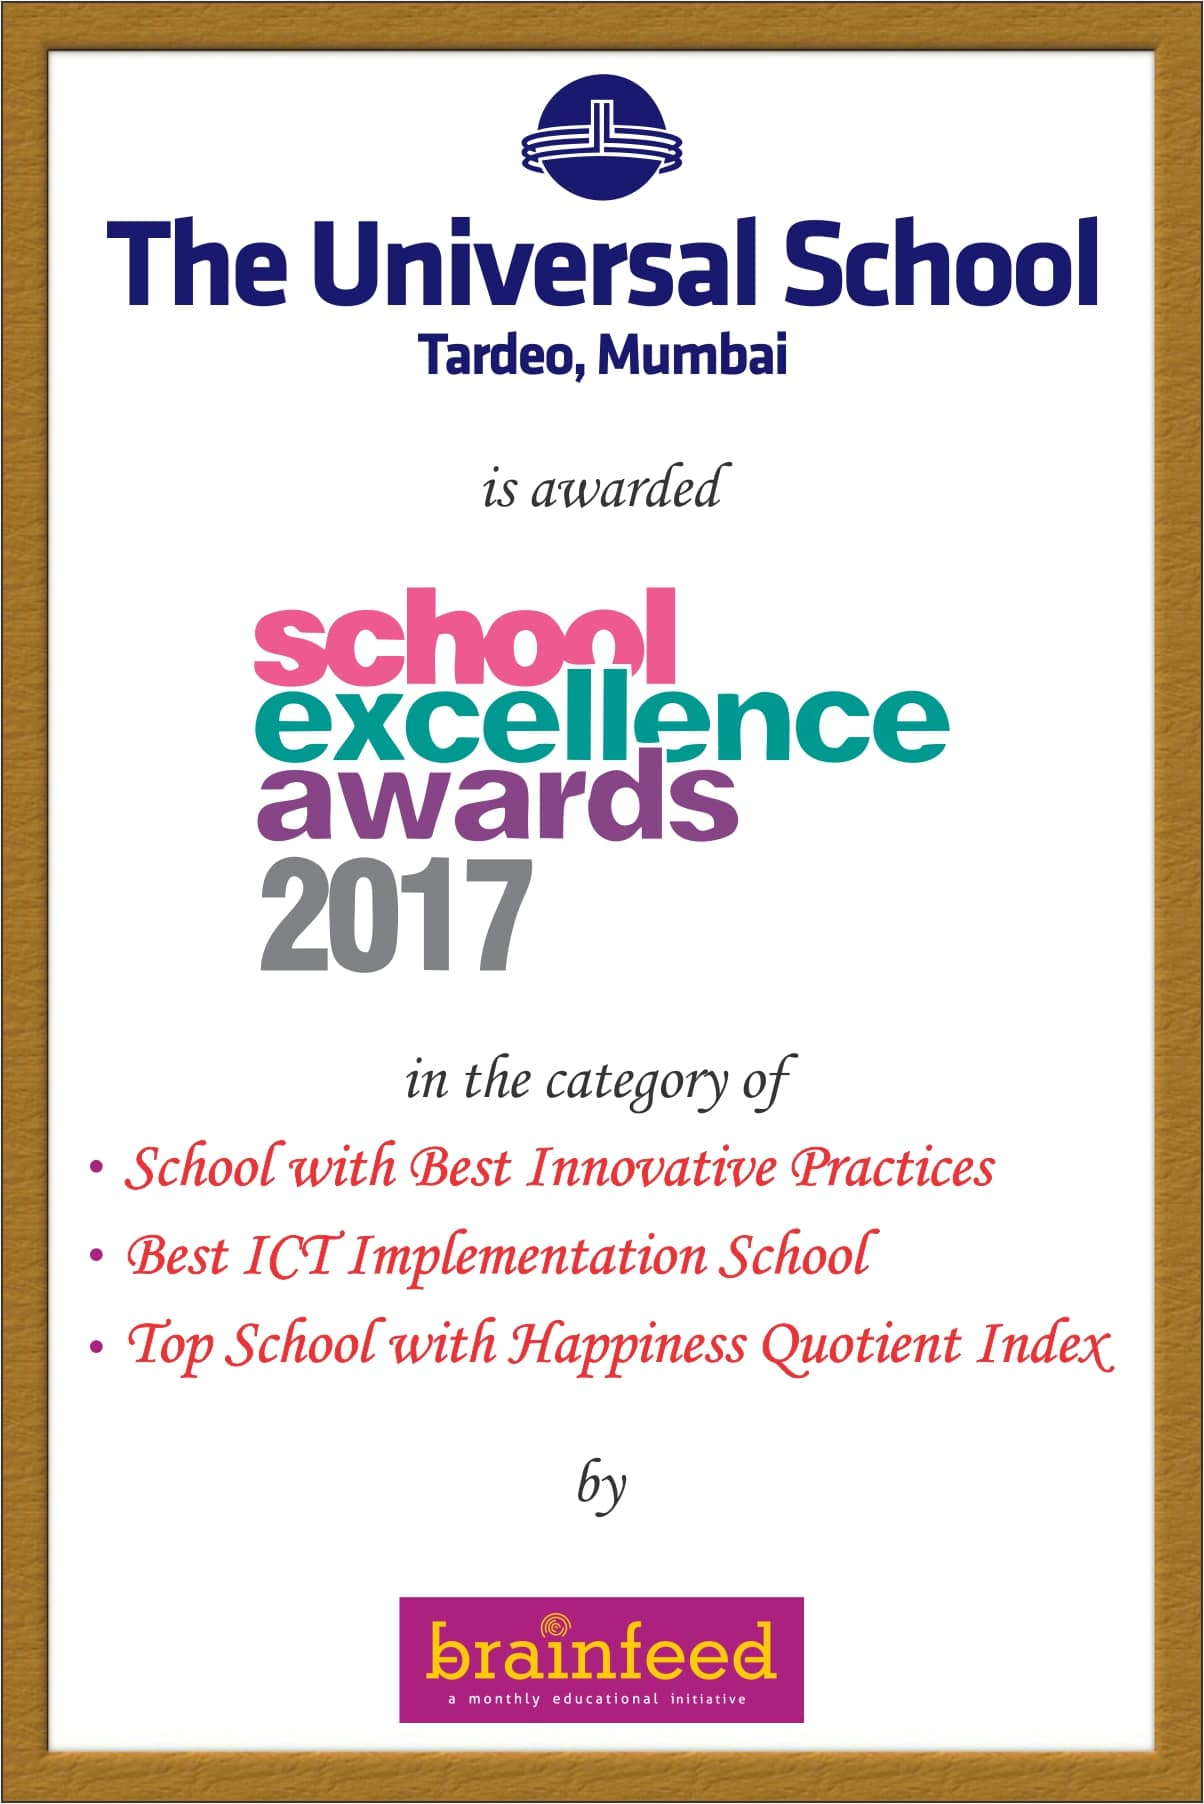 International School Mumbai Tardeo IGCSE School South Mum  Best Intl